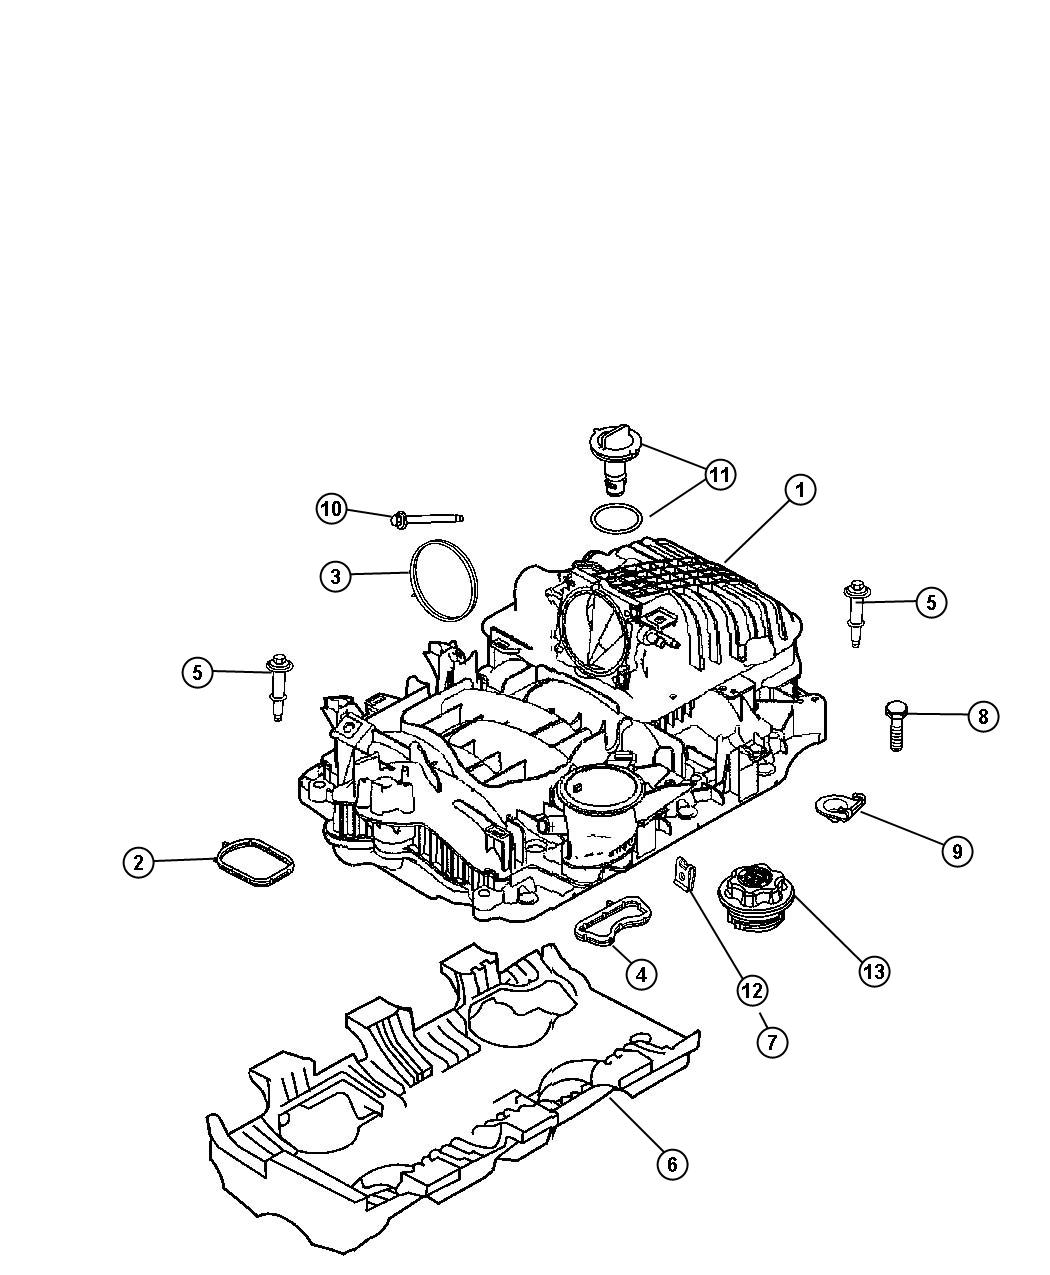 Ford Diagrams Ford E350 Fuse Box Diagram